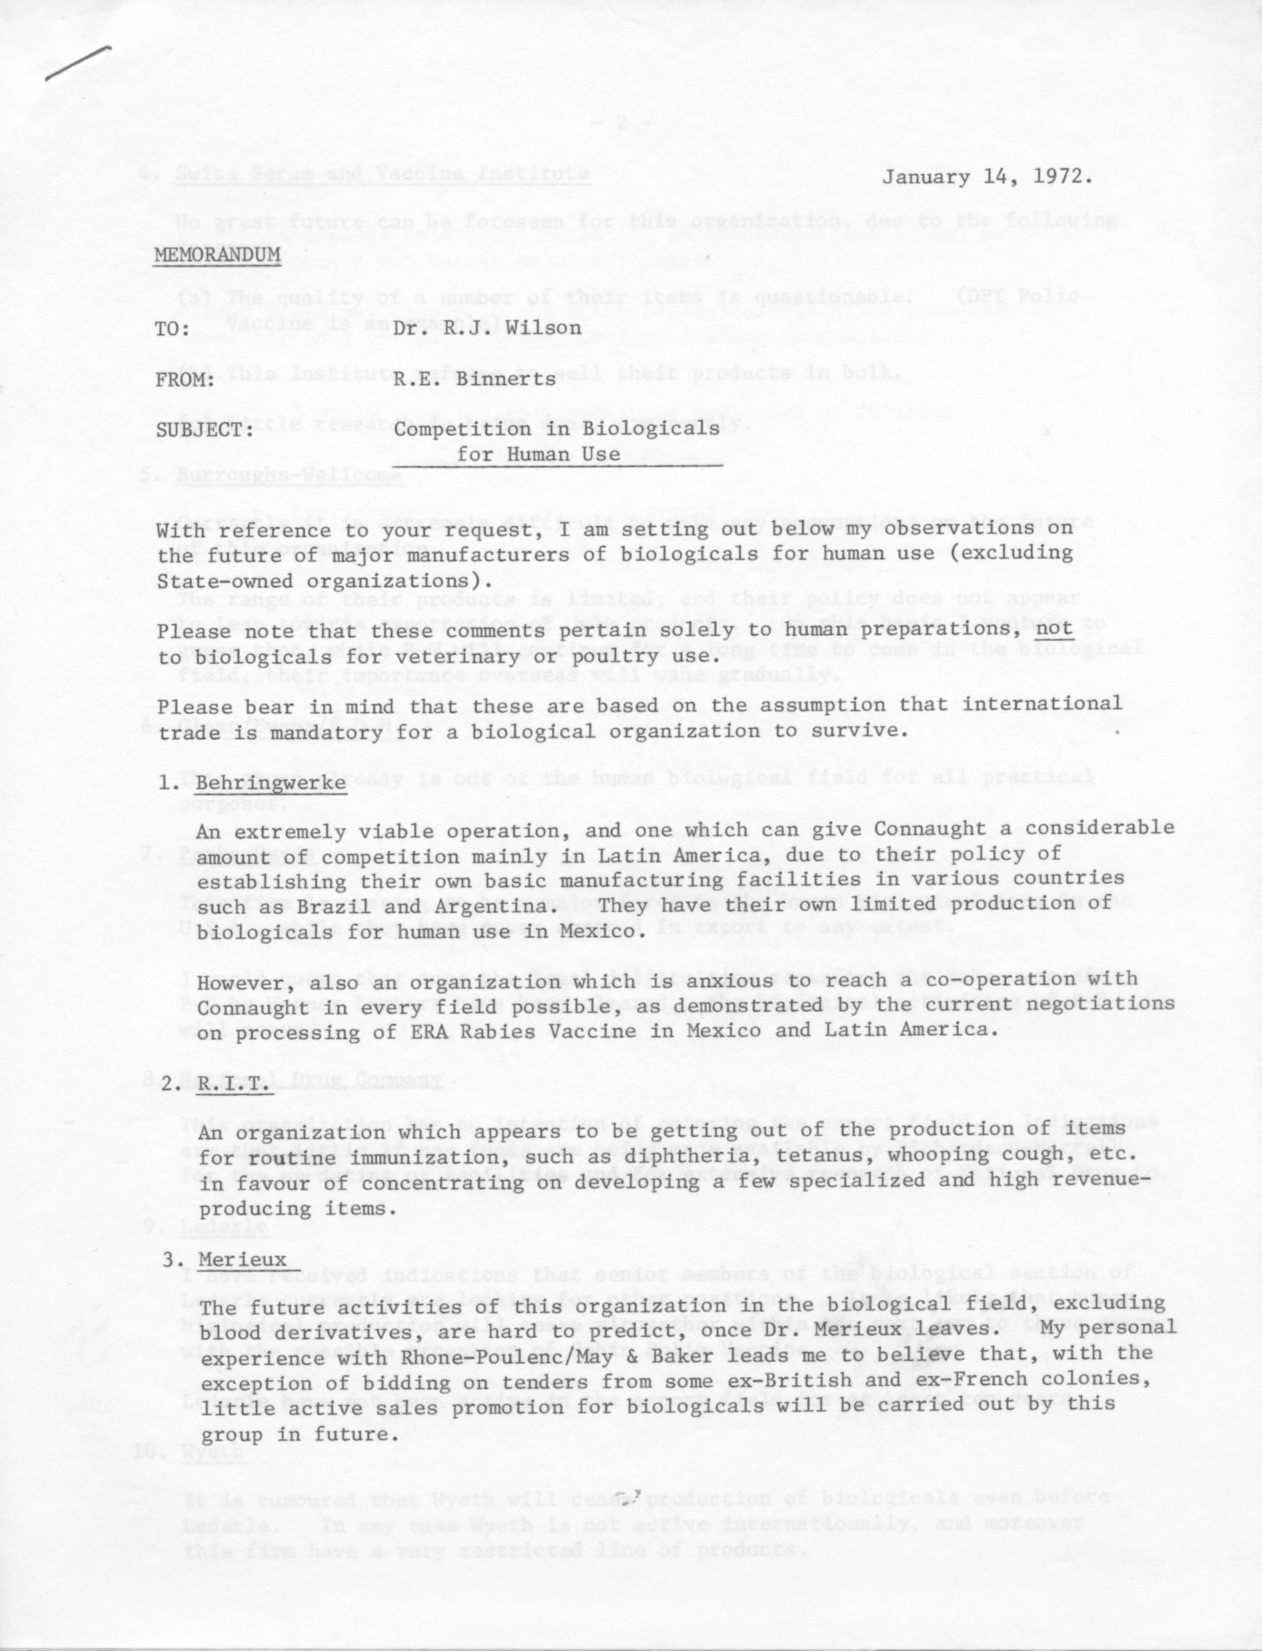 """First page of a Connaught Laboratories memo, dated January 14, 1972, from R.E. Binnerts to R.J. Wilson, entitled """"Competition in Biological for Human Use. Note the summary for """"Mérieux"""". Institut Mérieux, based in Lyon, France, would ultimately acquire Connaught Laboratories in 1989. Full document available at: http://healthheritageresearch.com/clients/docs/UTCF/Article-12/BinnertsRE-Memo-CompetitionBiologicalsHumanUse-1972-01-14-SPCA-CLLgeneral1971-73-Box29.pdf"""